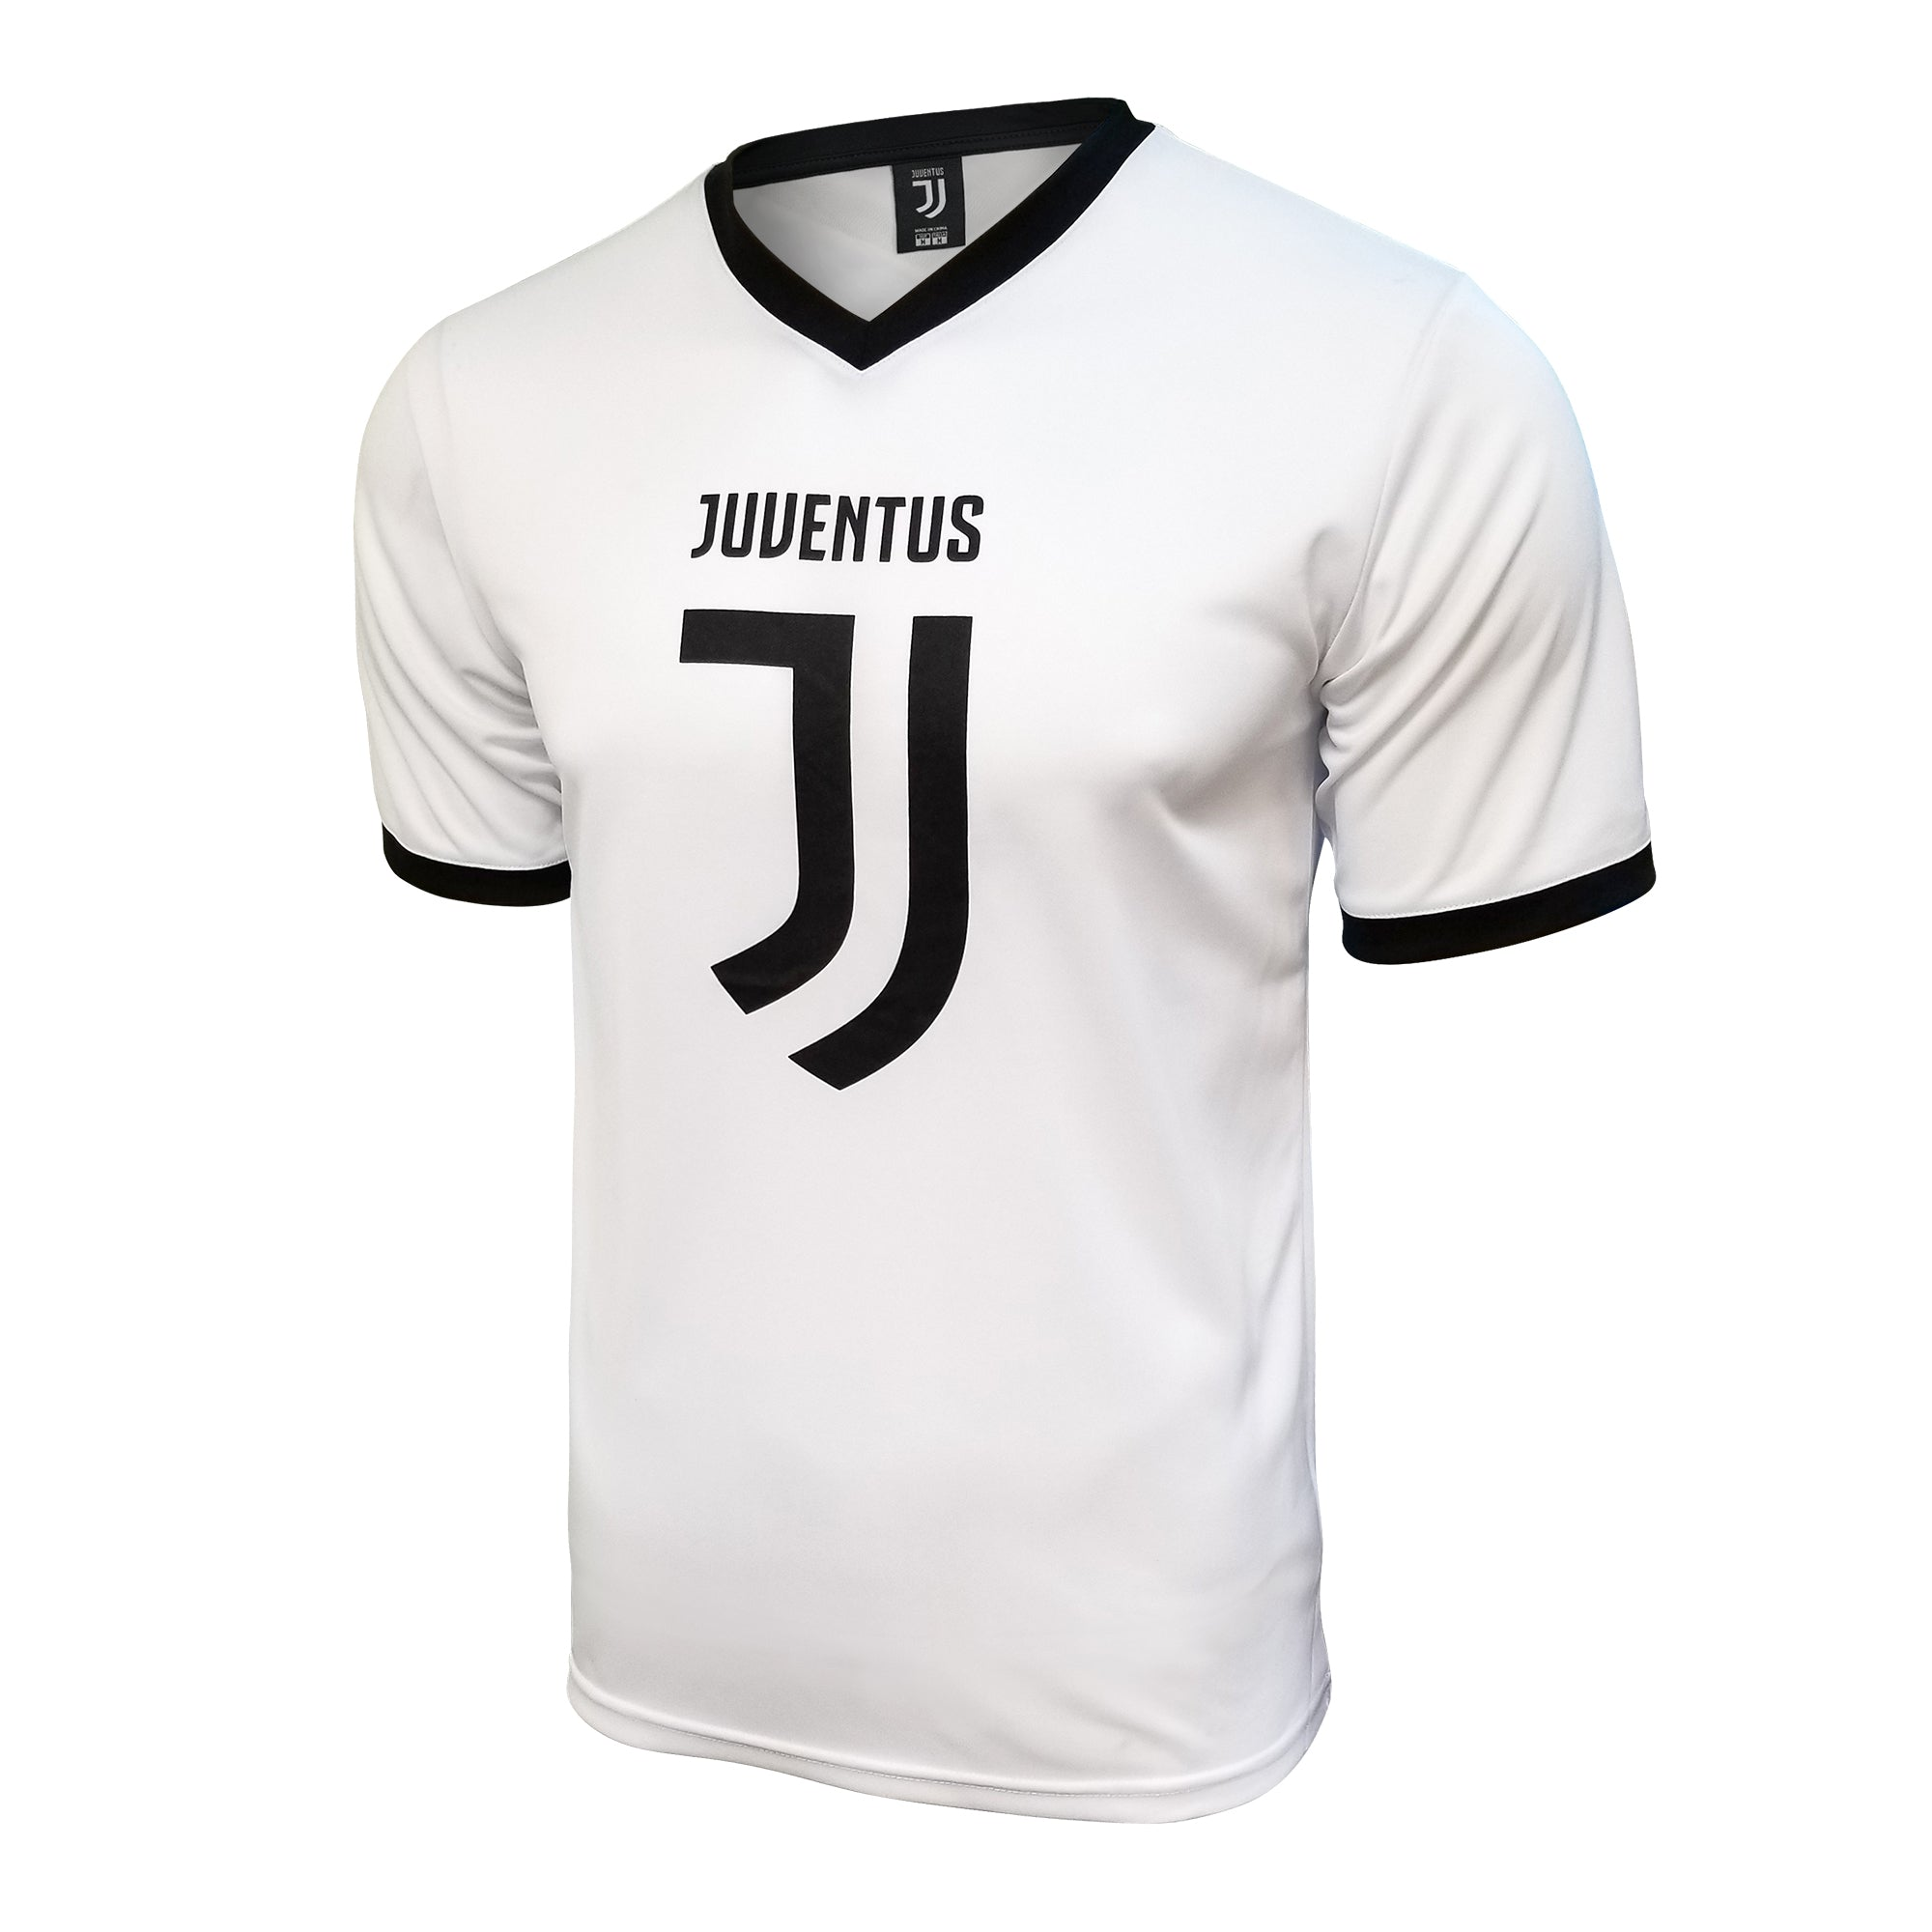 Juventus Logo Training Class Shirt - White by Icon Sports